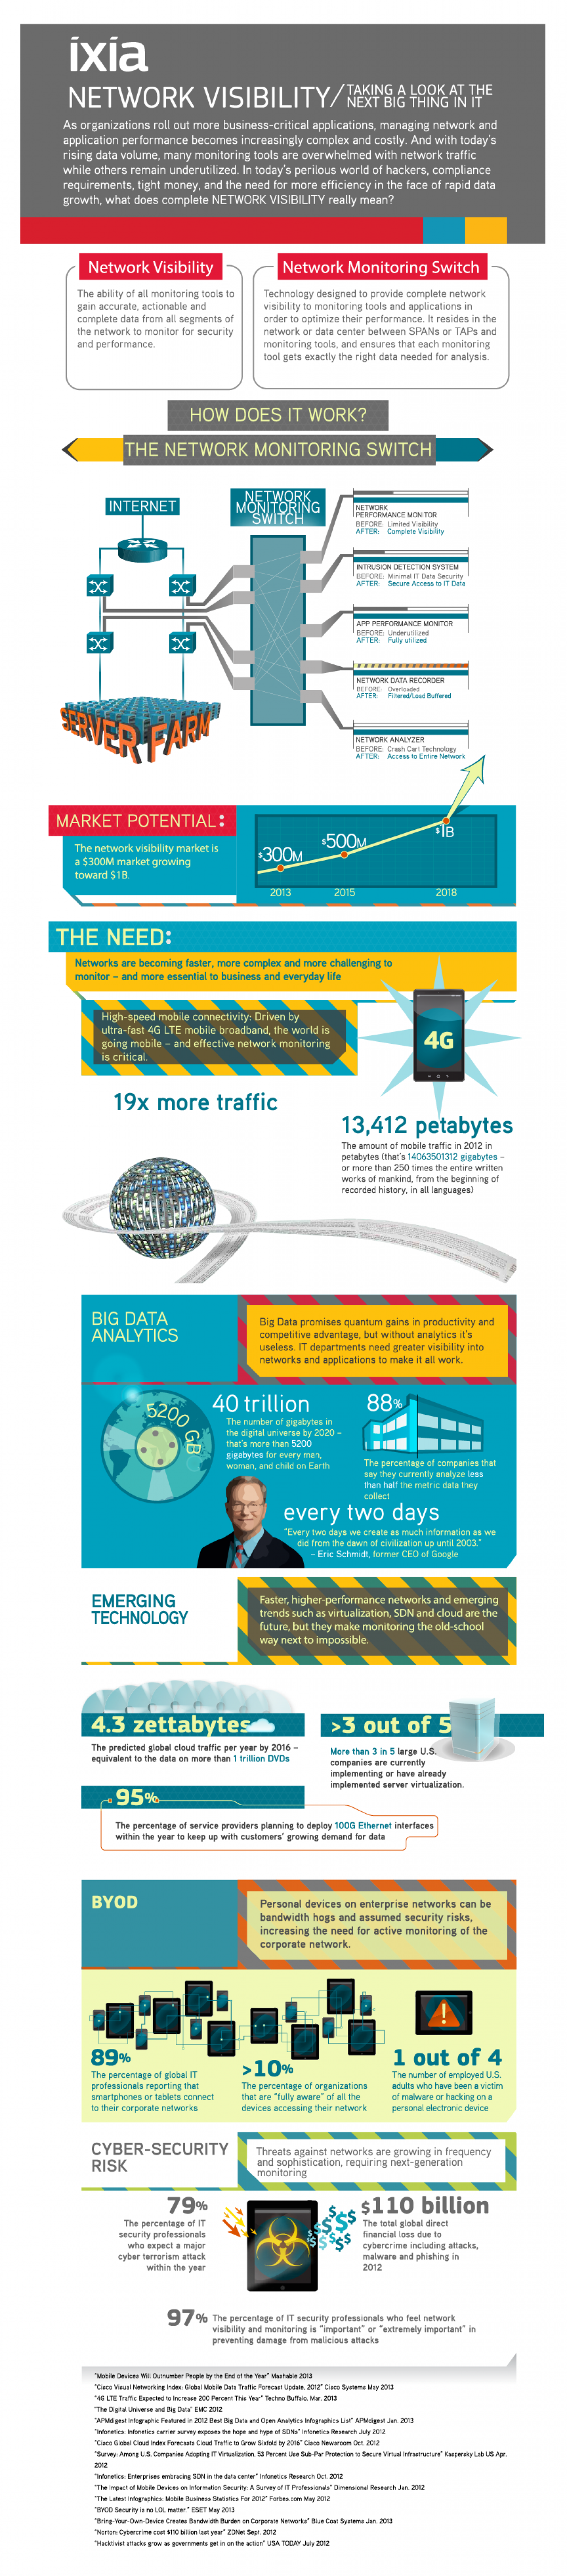 Network Visibility Infographic